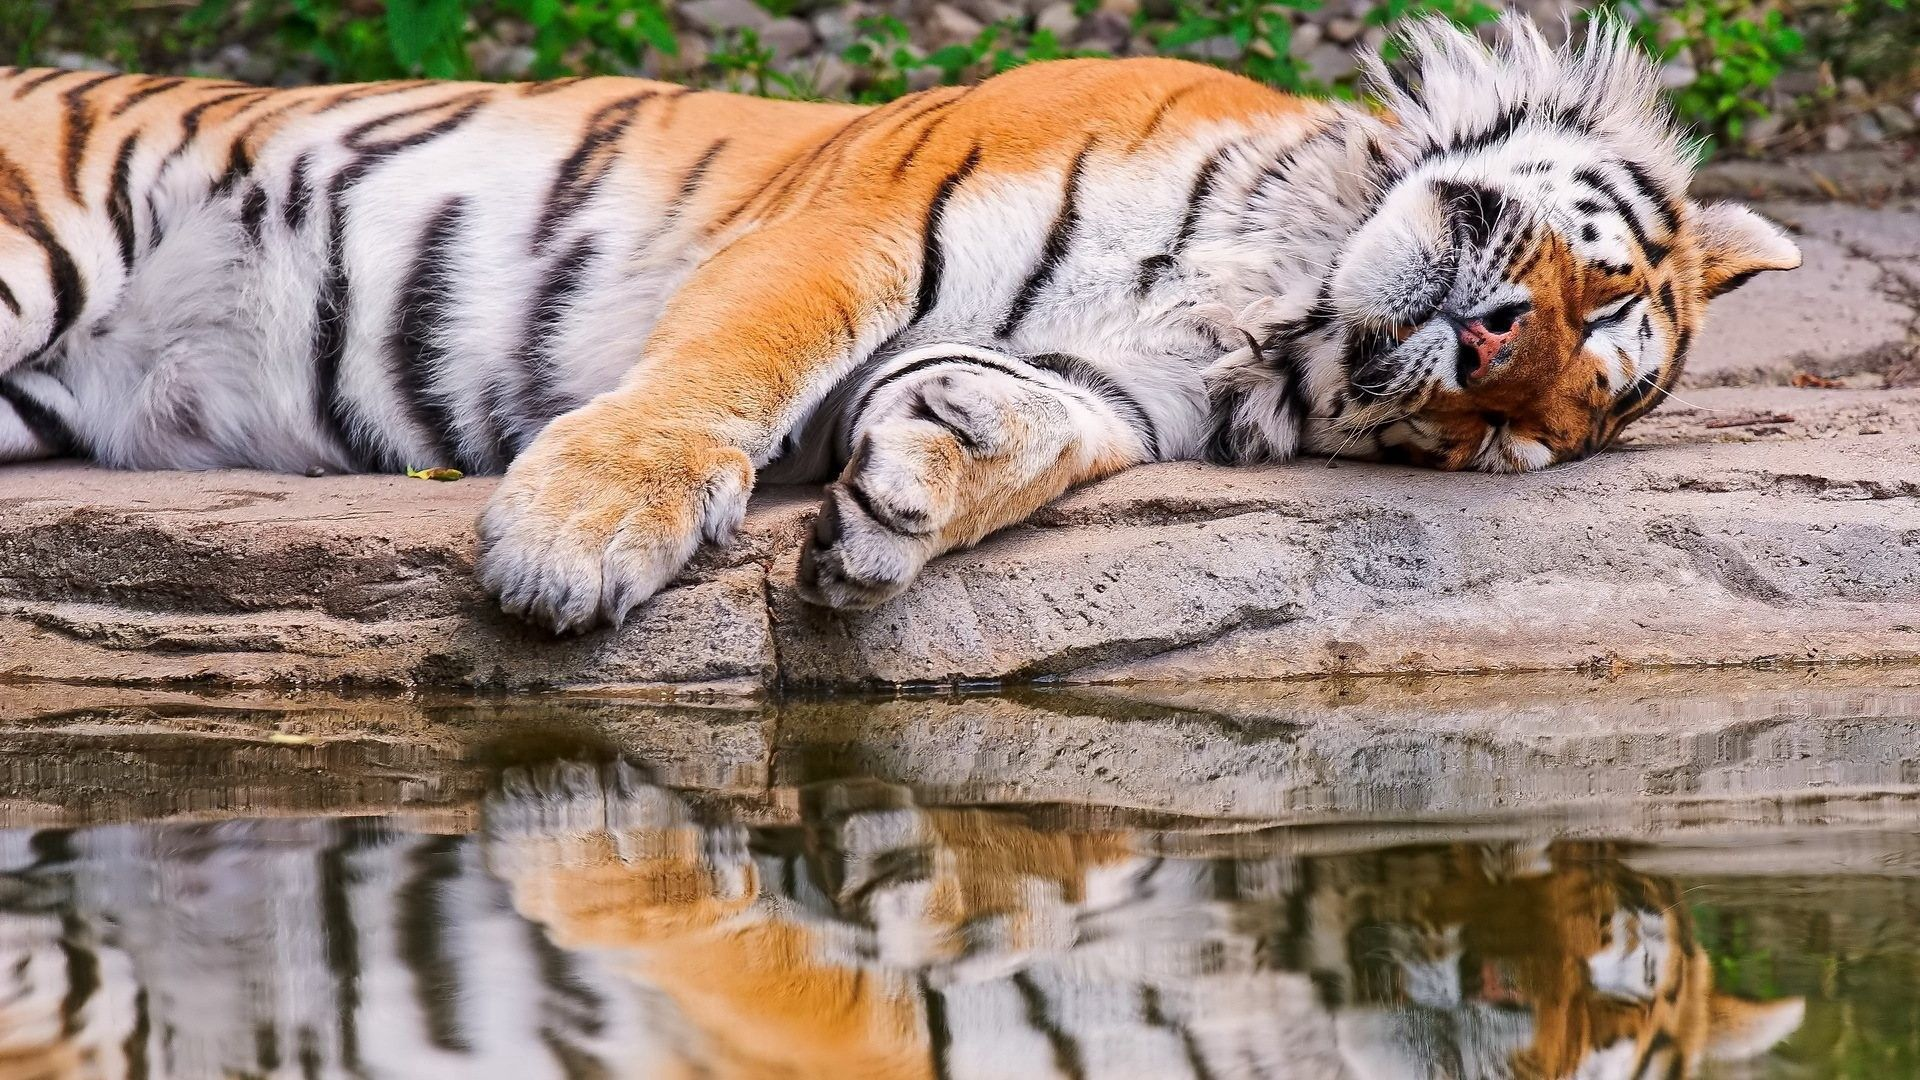 95441 download wallpaper Animals, Tiger, Water, To Lie Down, Lie, Reflection screensavers and pictures for free